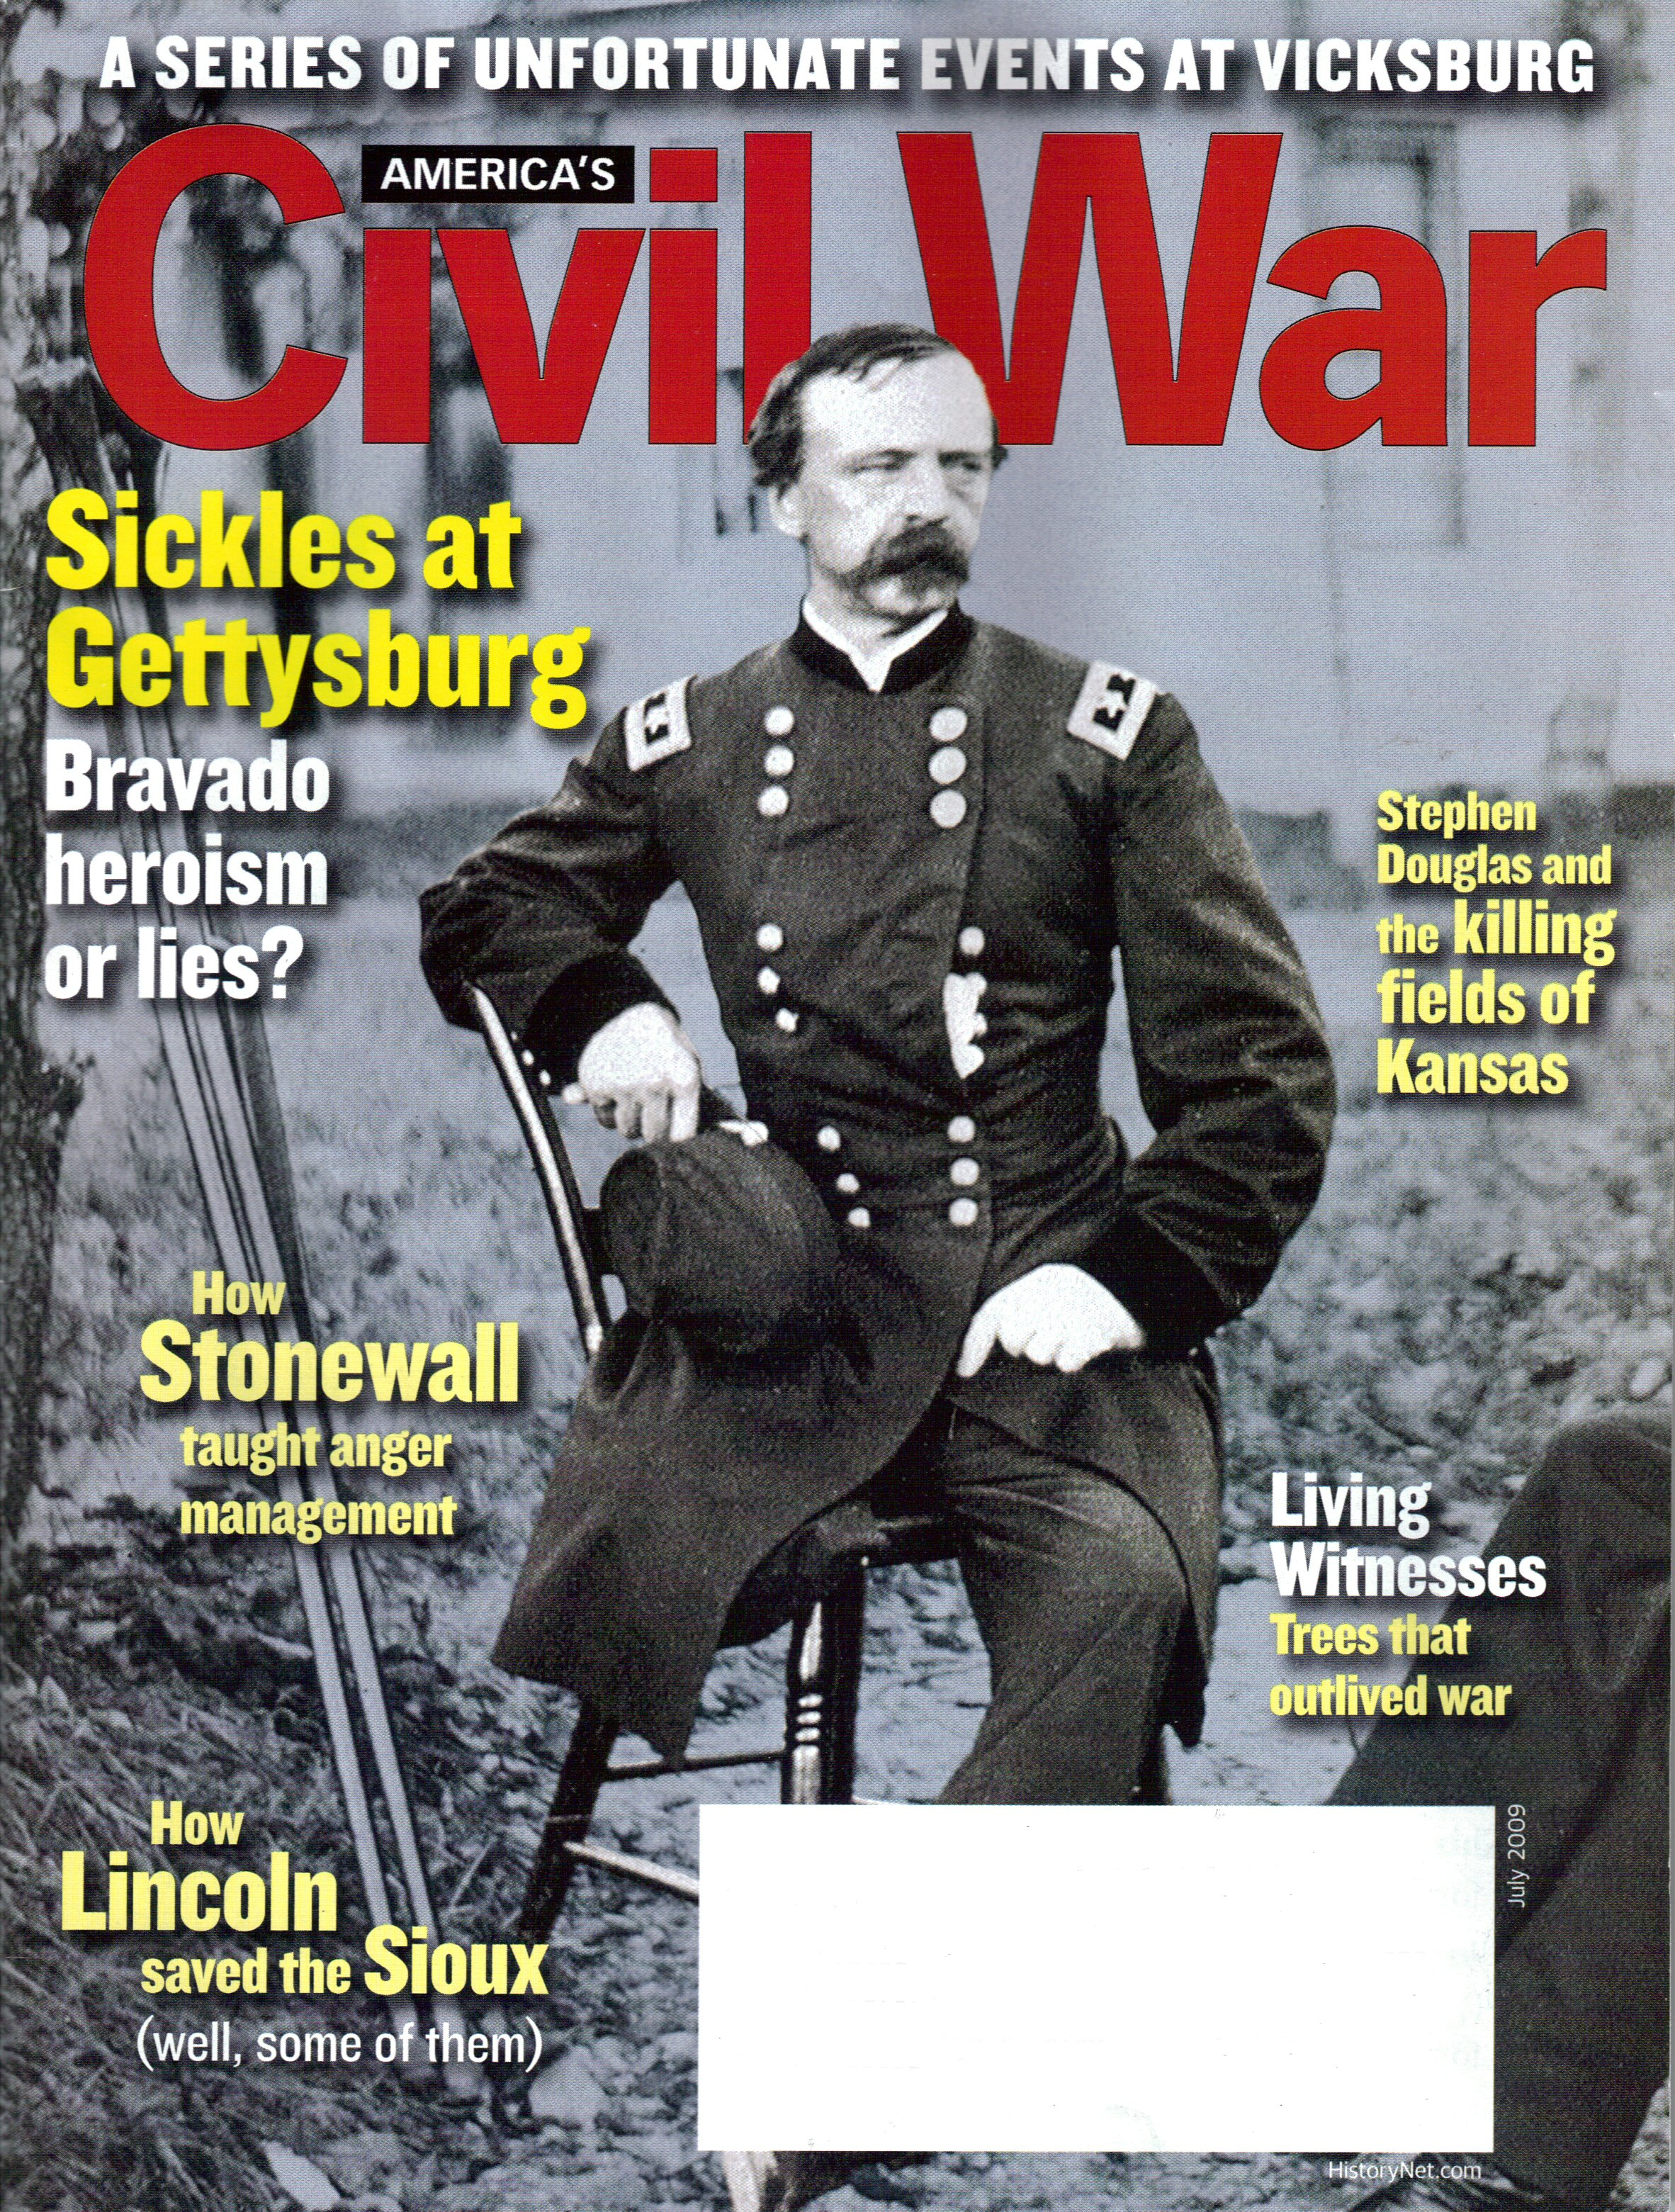 Americas Civil War, Volume 22, Number 3 (July 2009)